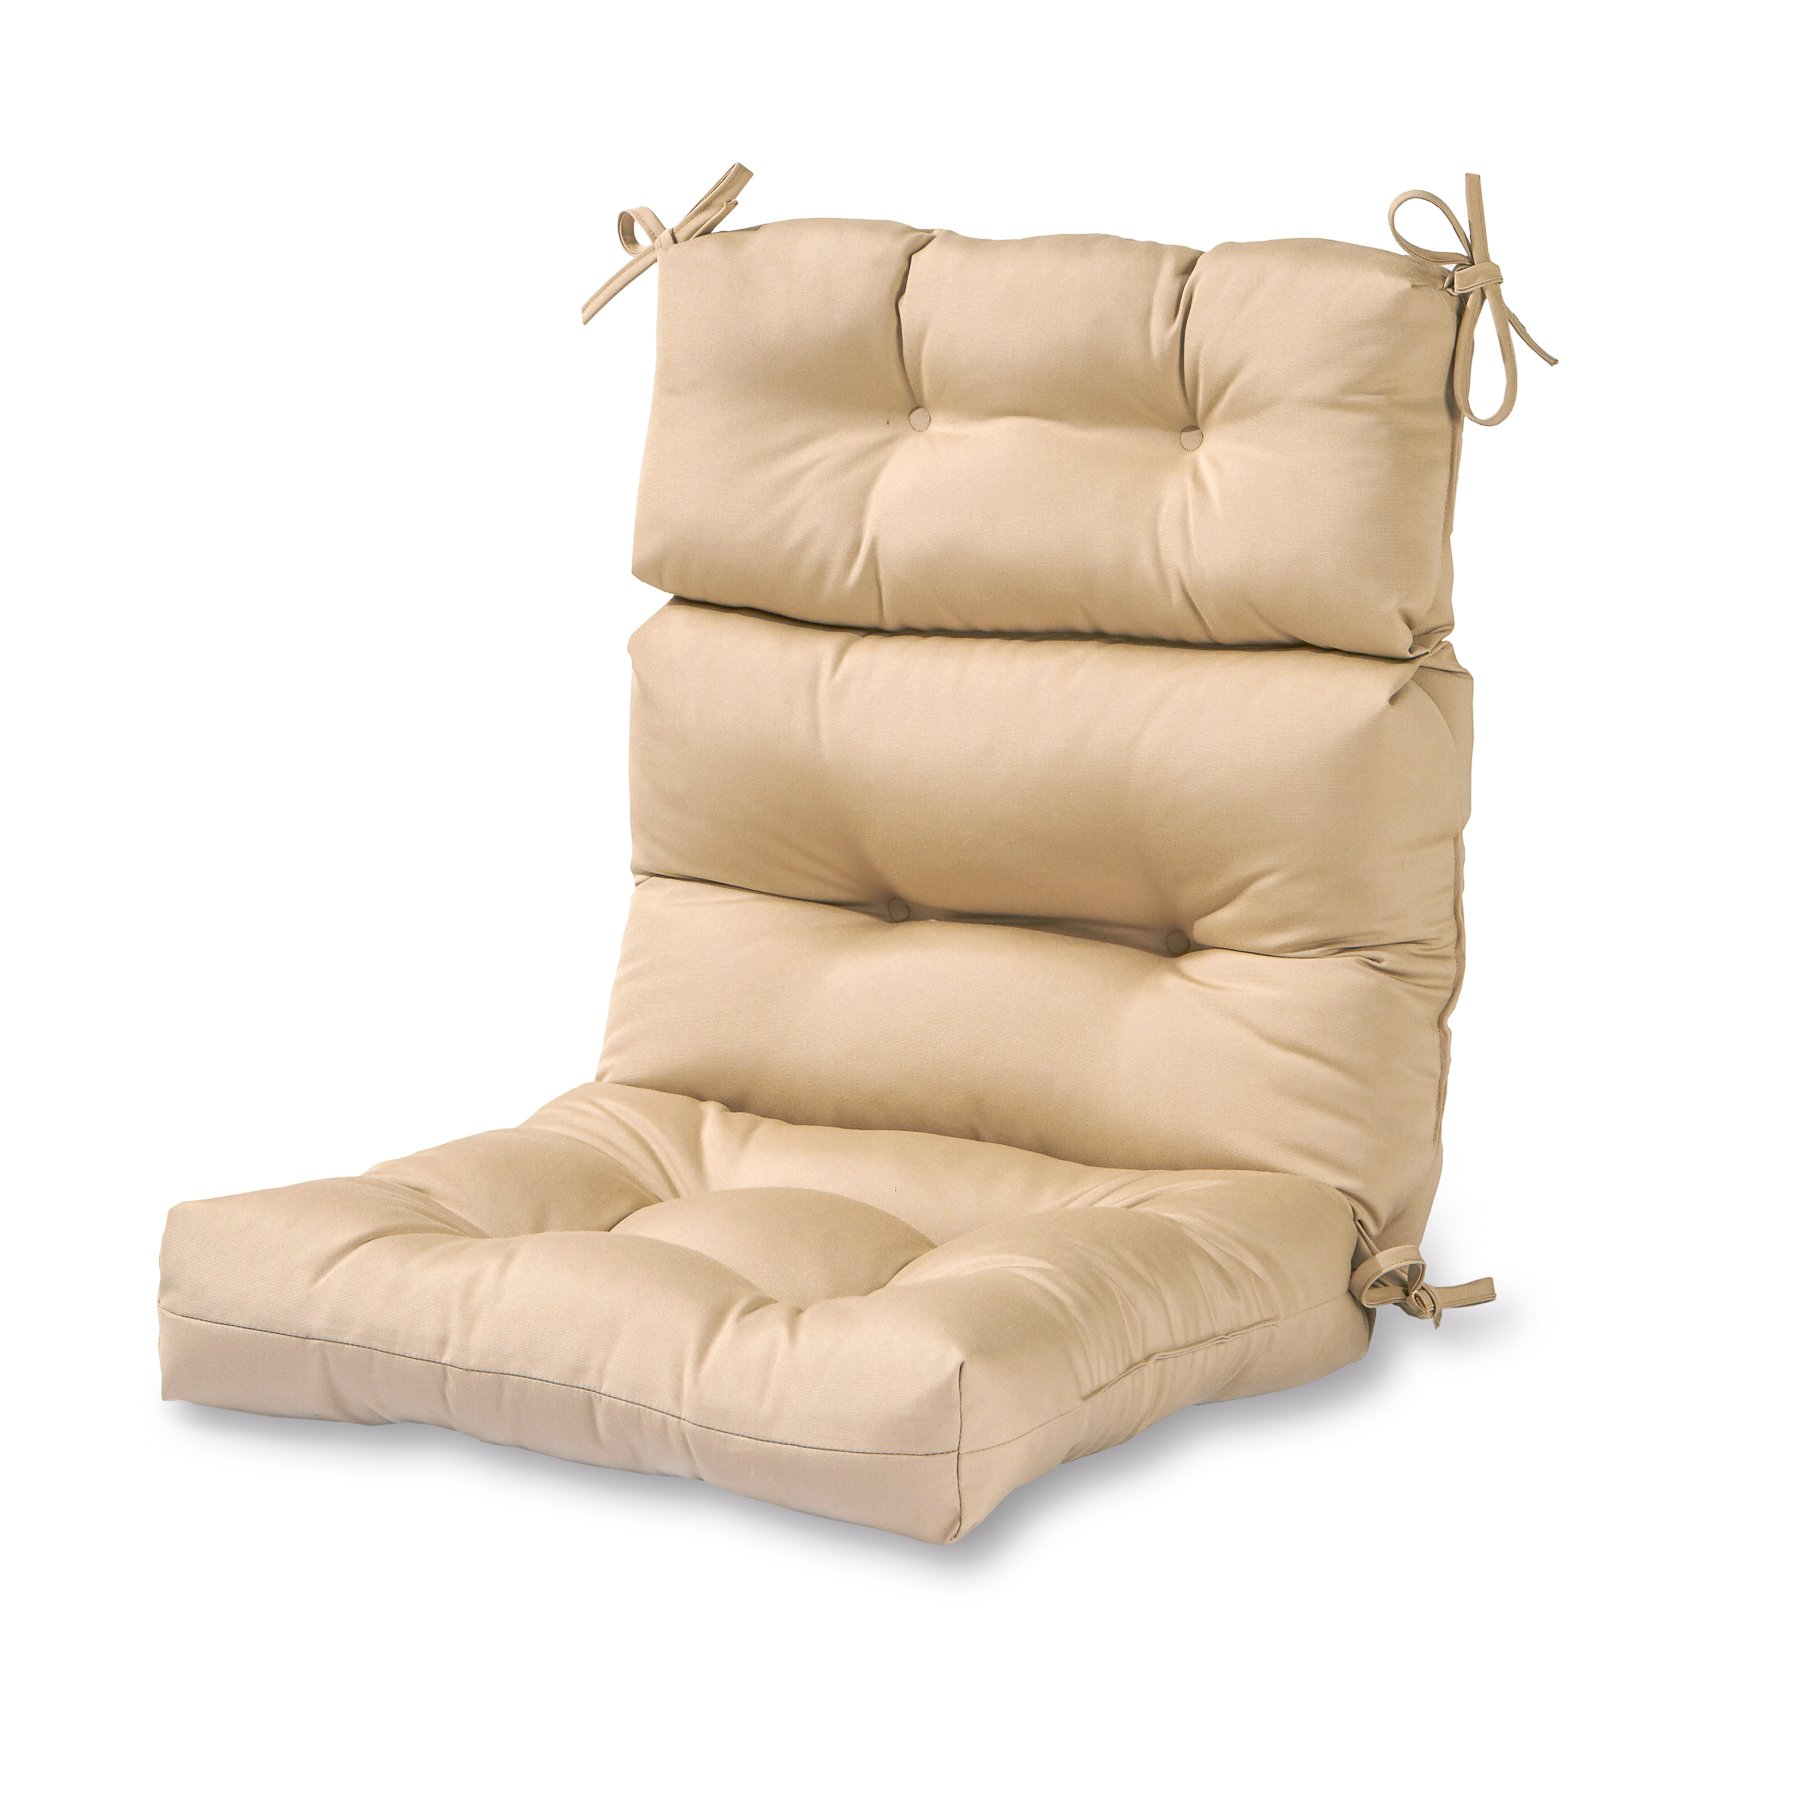 Greendale Home Fashions Outdoor High Back Chair Cushion, Stone by Greendale Home Fashions (Image #1)